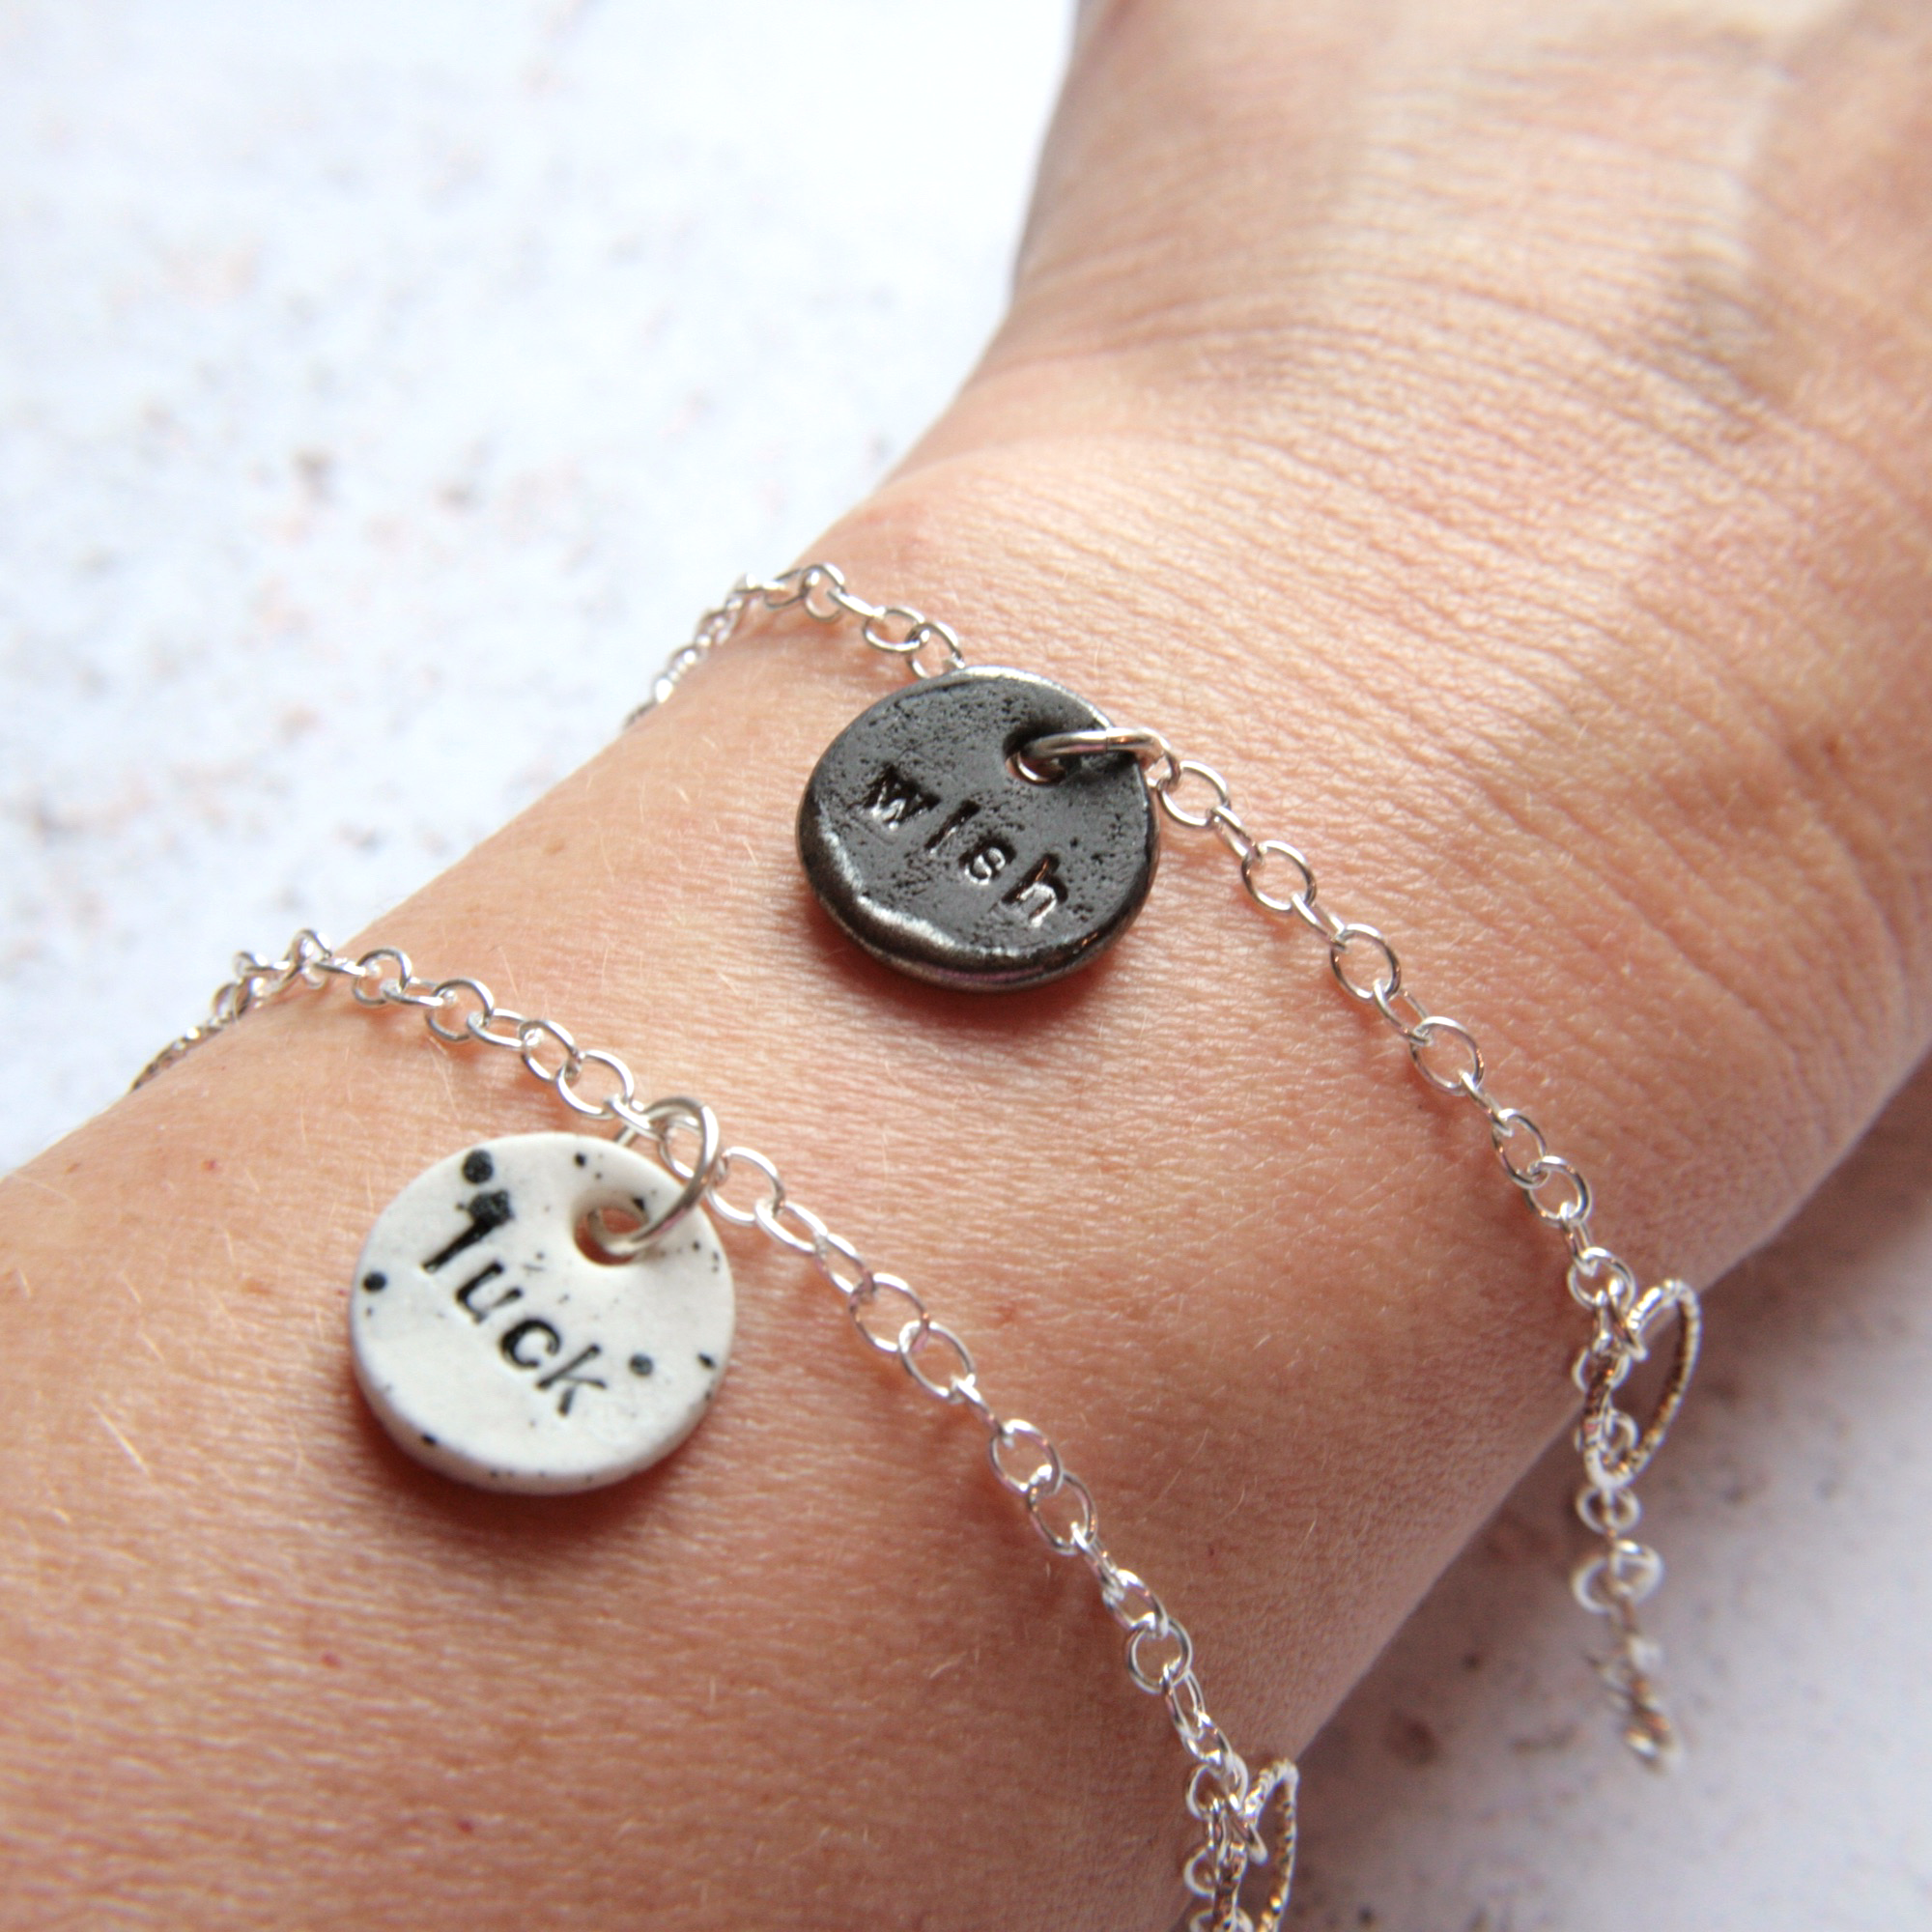 silver bracelets with lucky charms